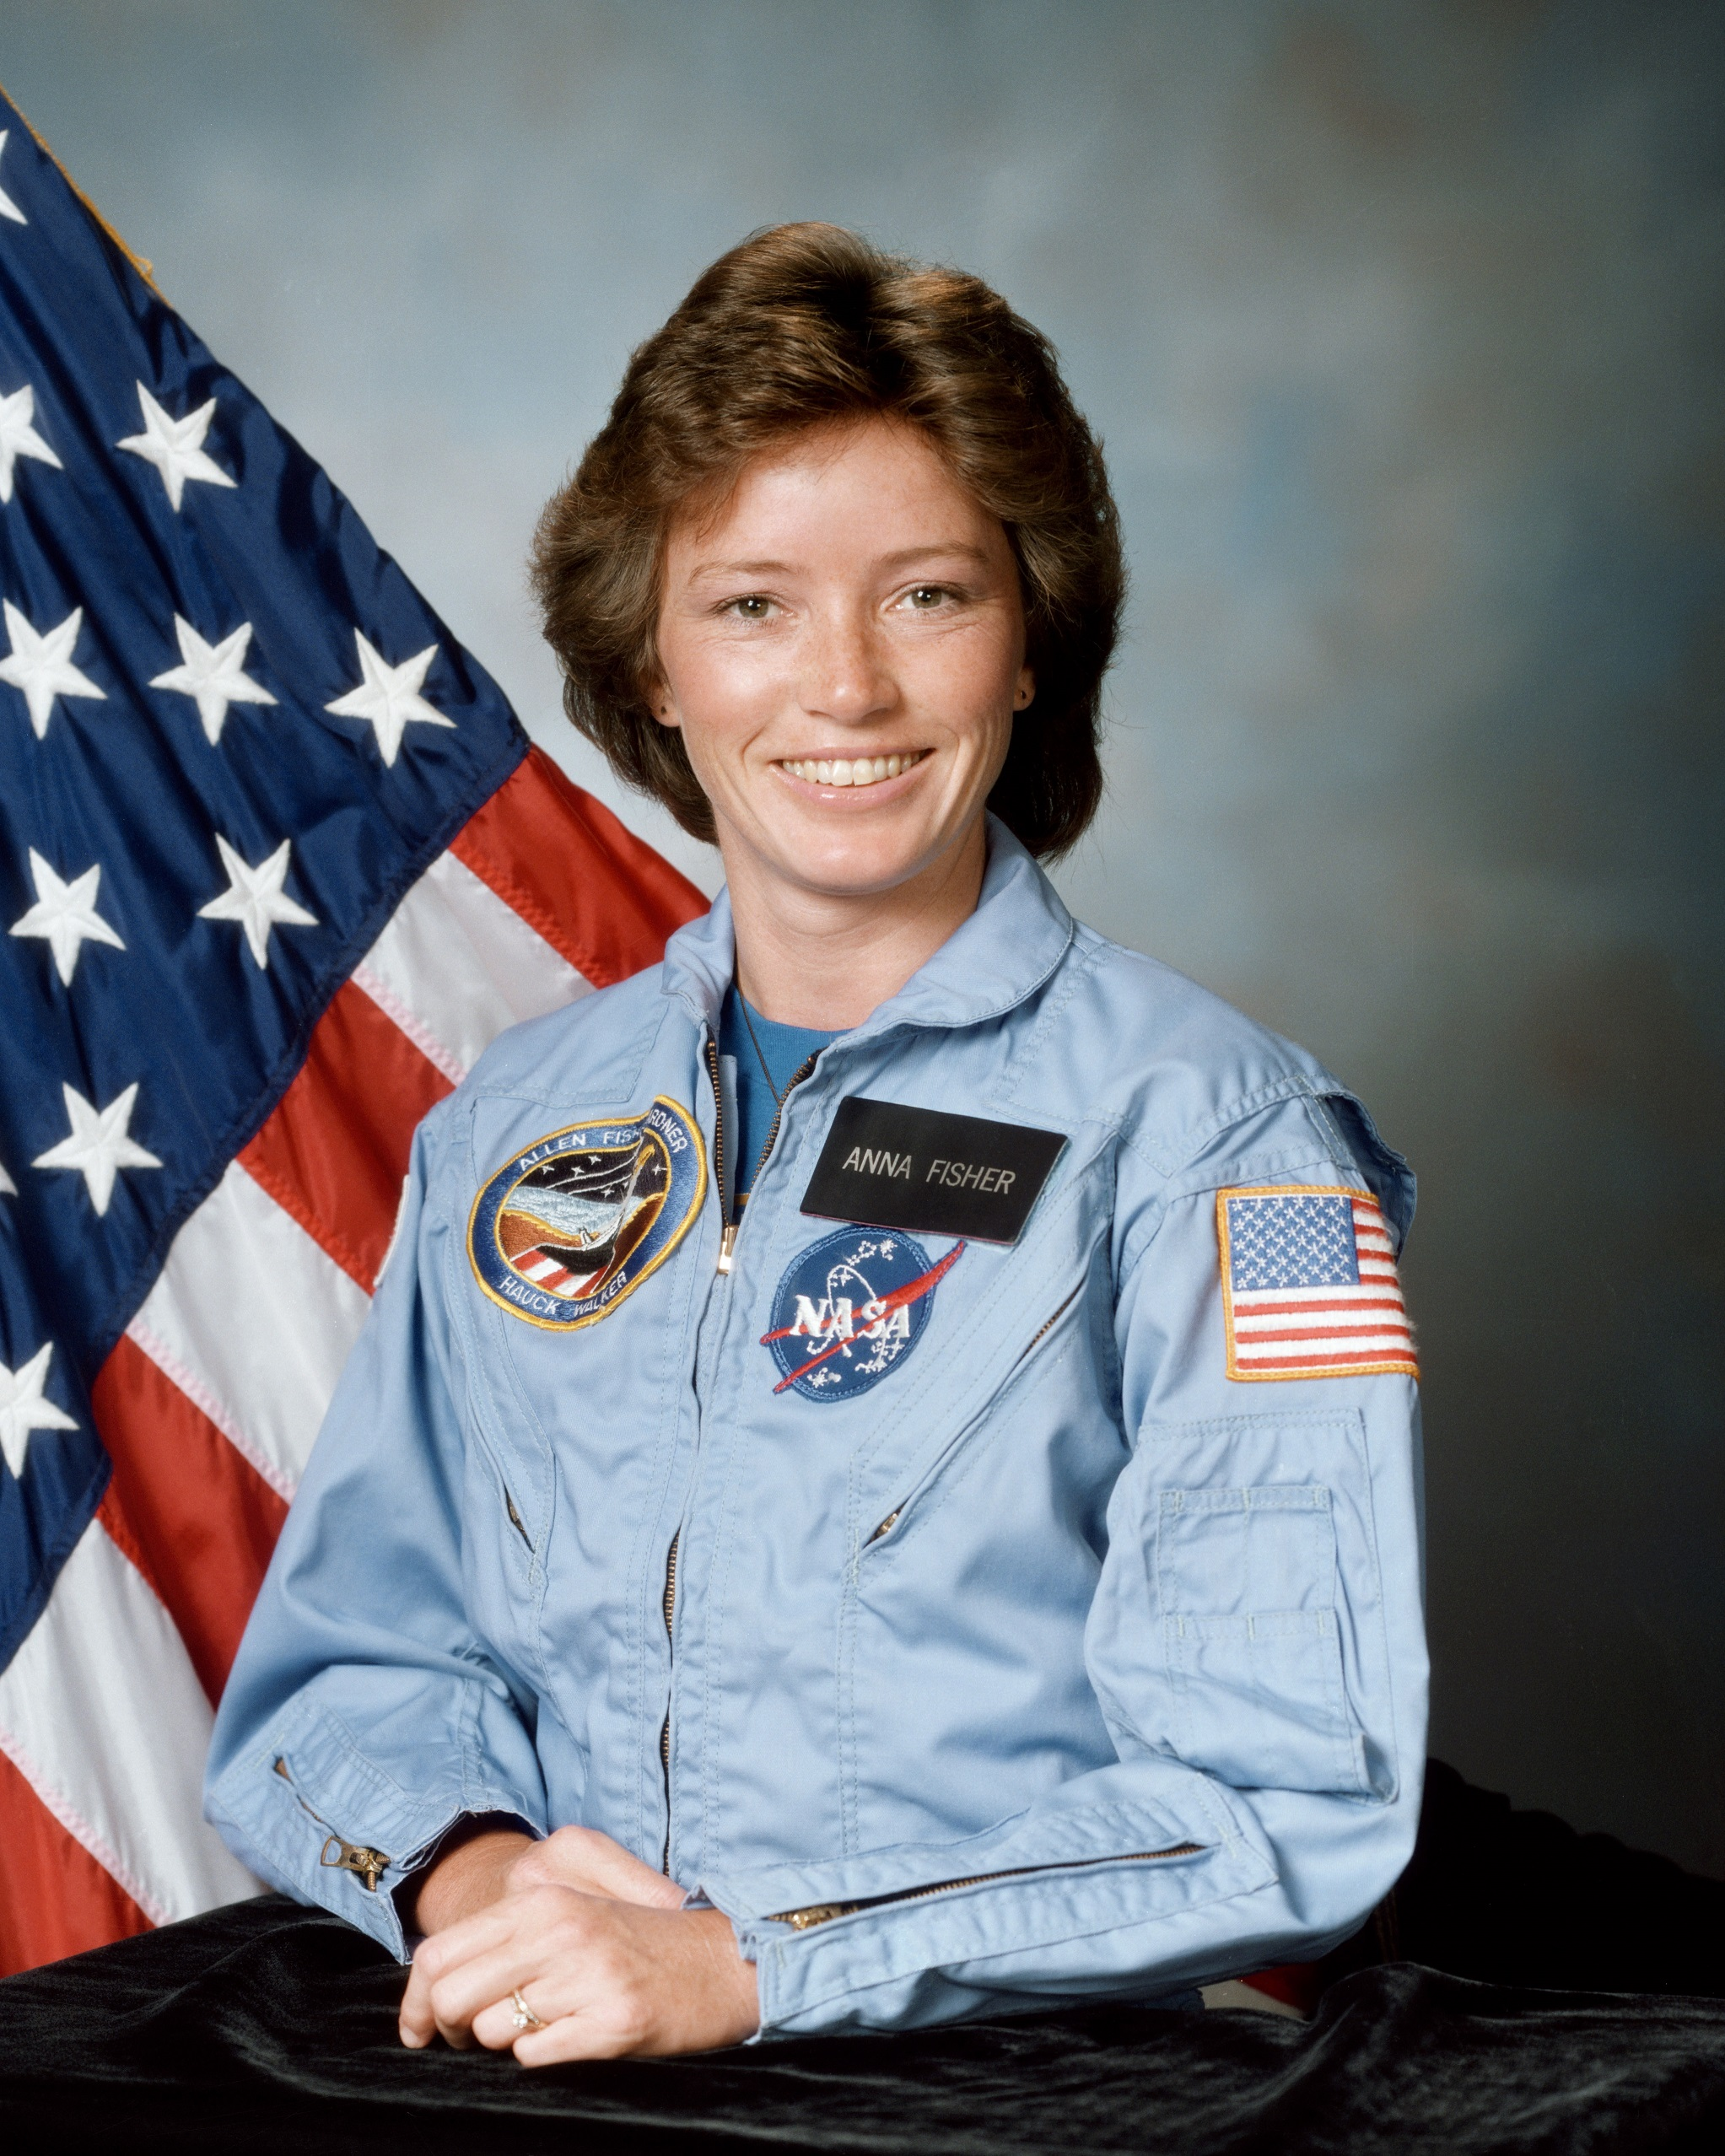 astronaut rank - photo #15